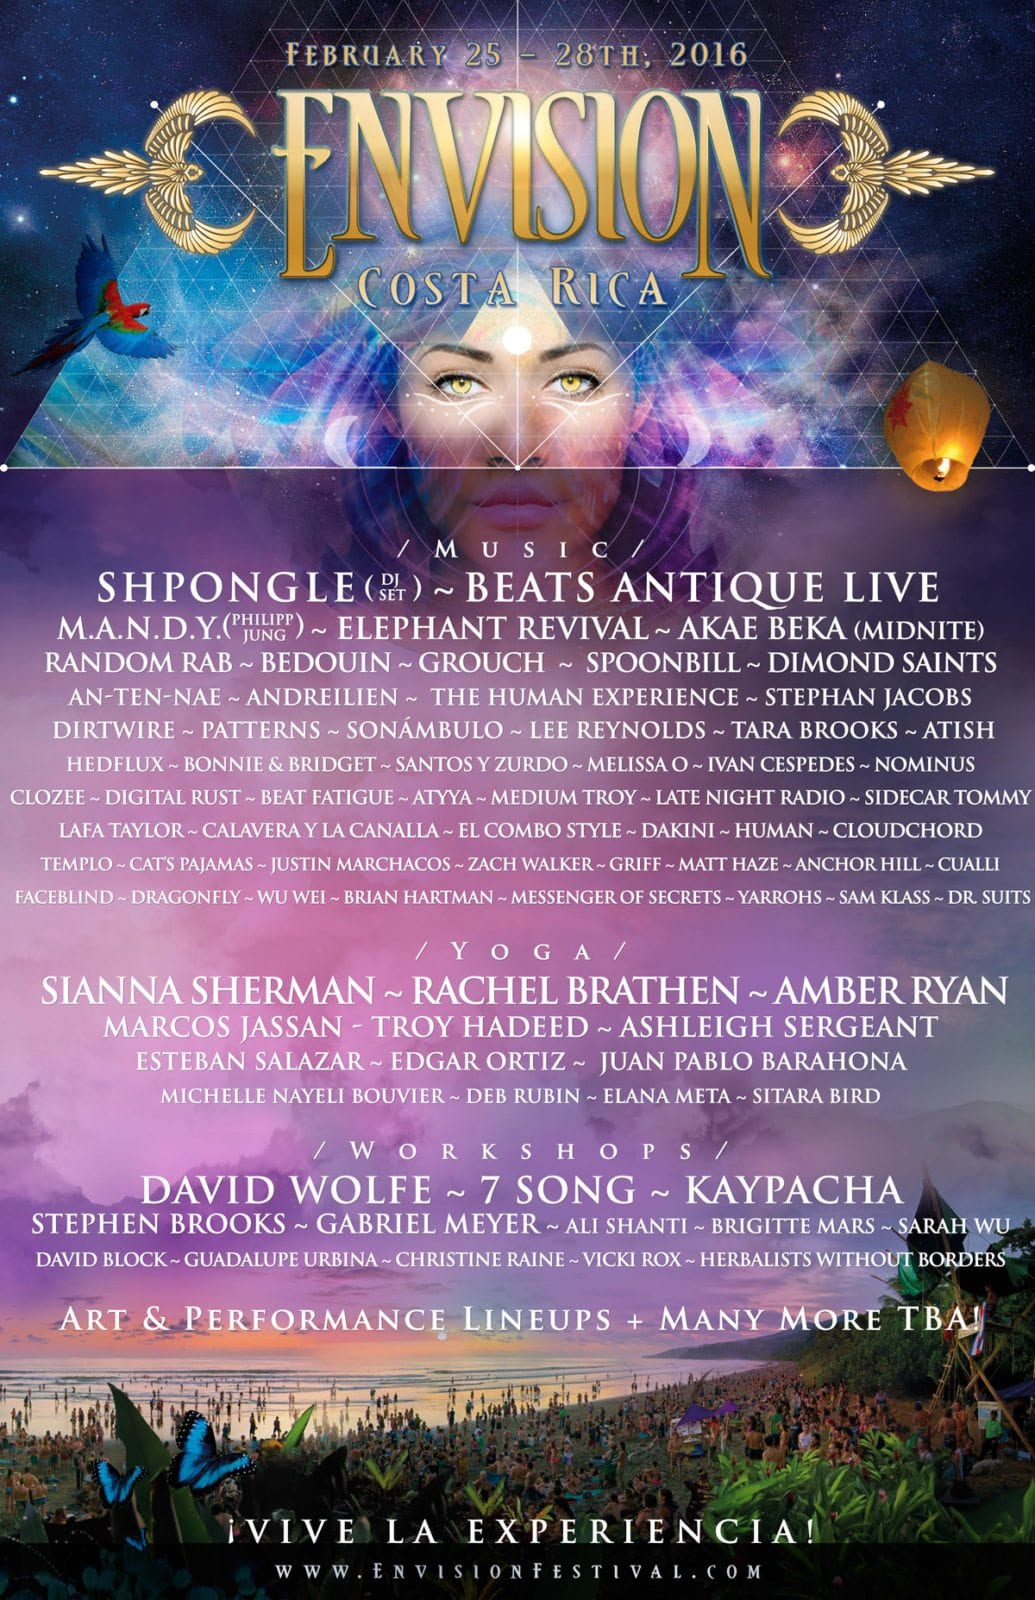 Envision Costa Rica 2016 Lineup Poster